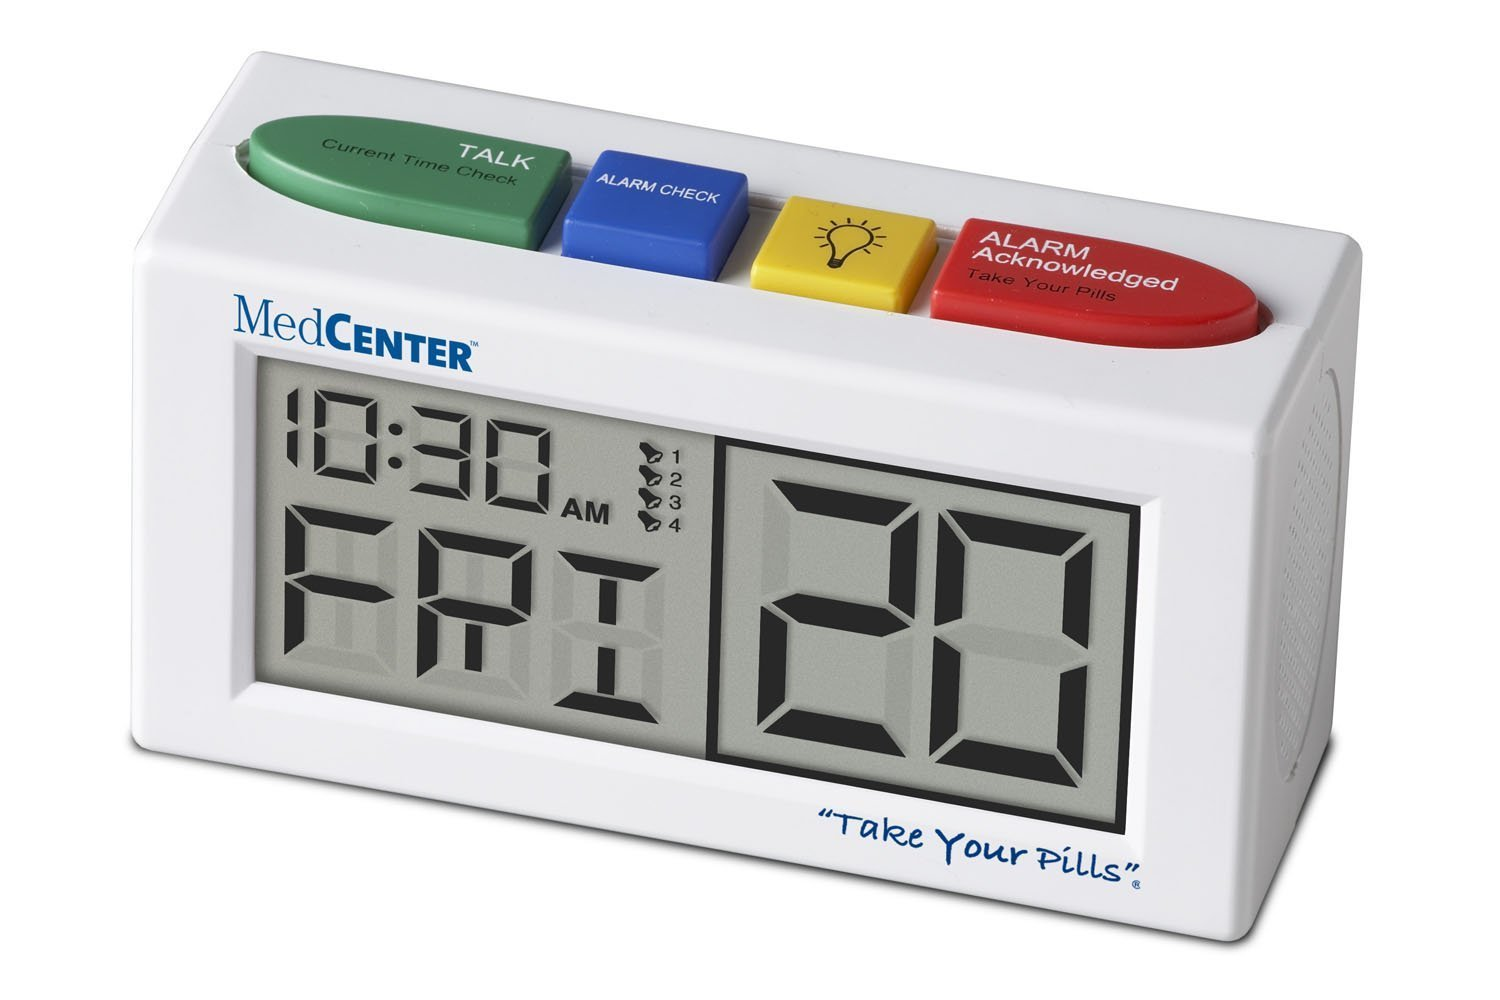 Medcenter Talking Alarm Clock And Medication Reminder Amazon